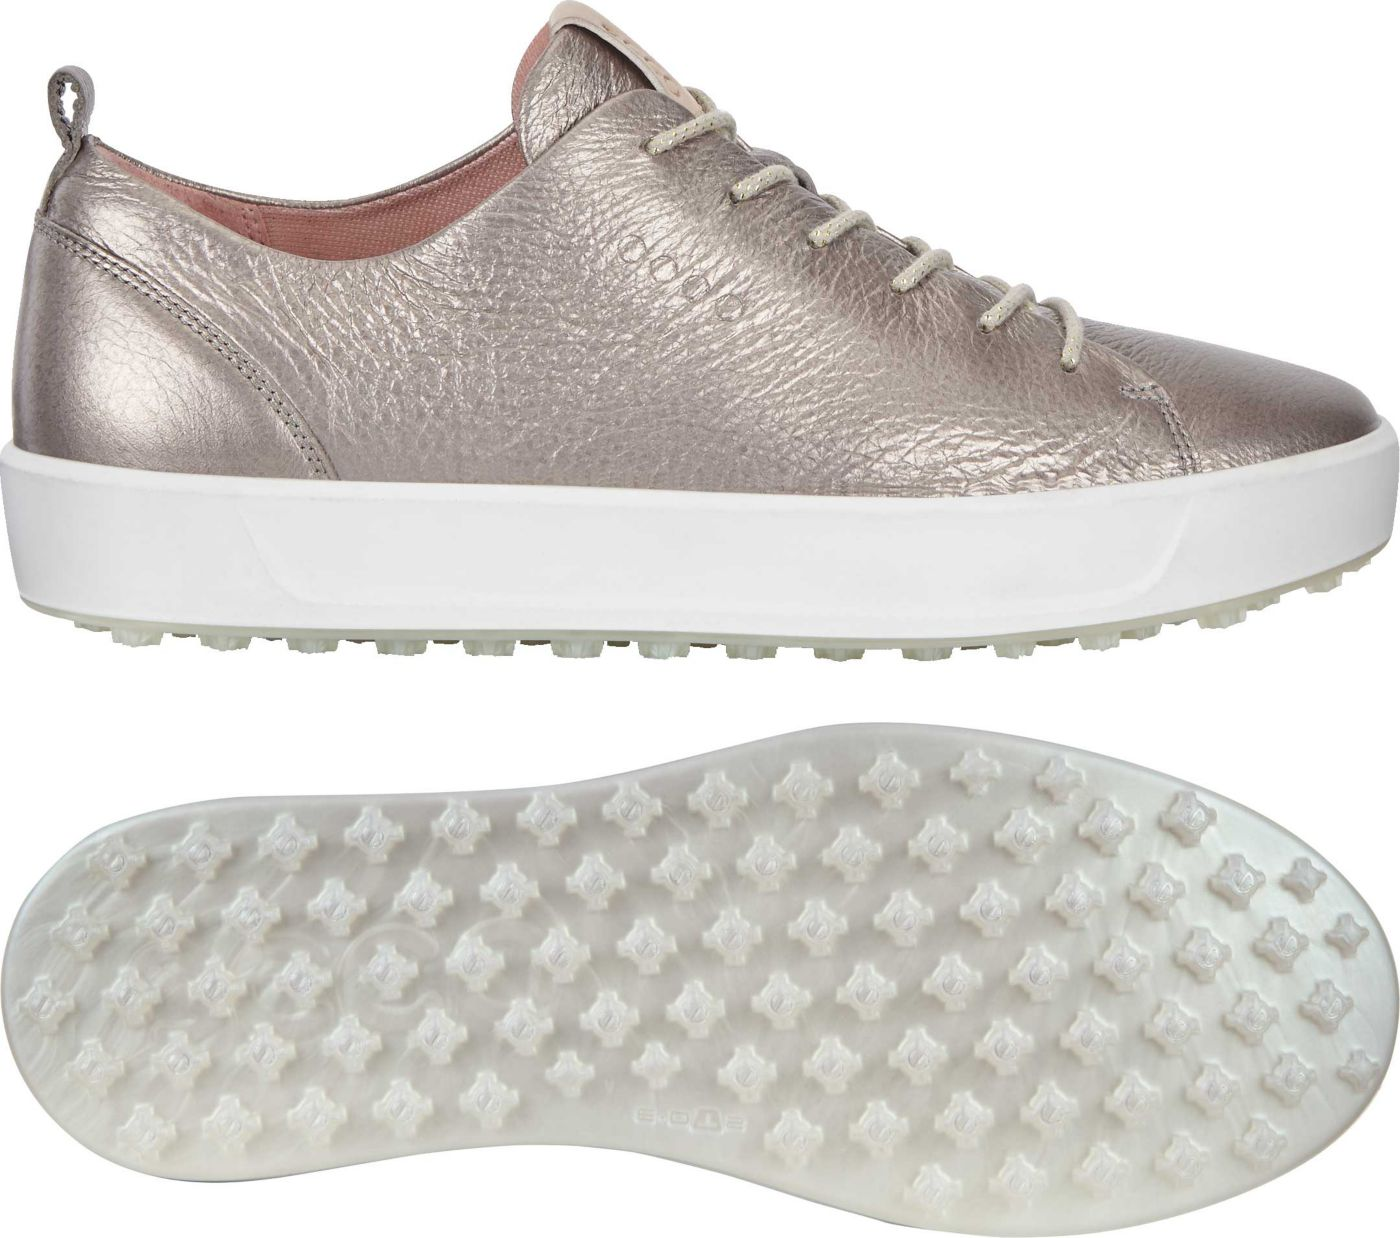 ECCO Women's Casual Hybrid Shoes